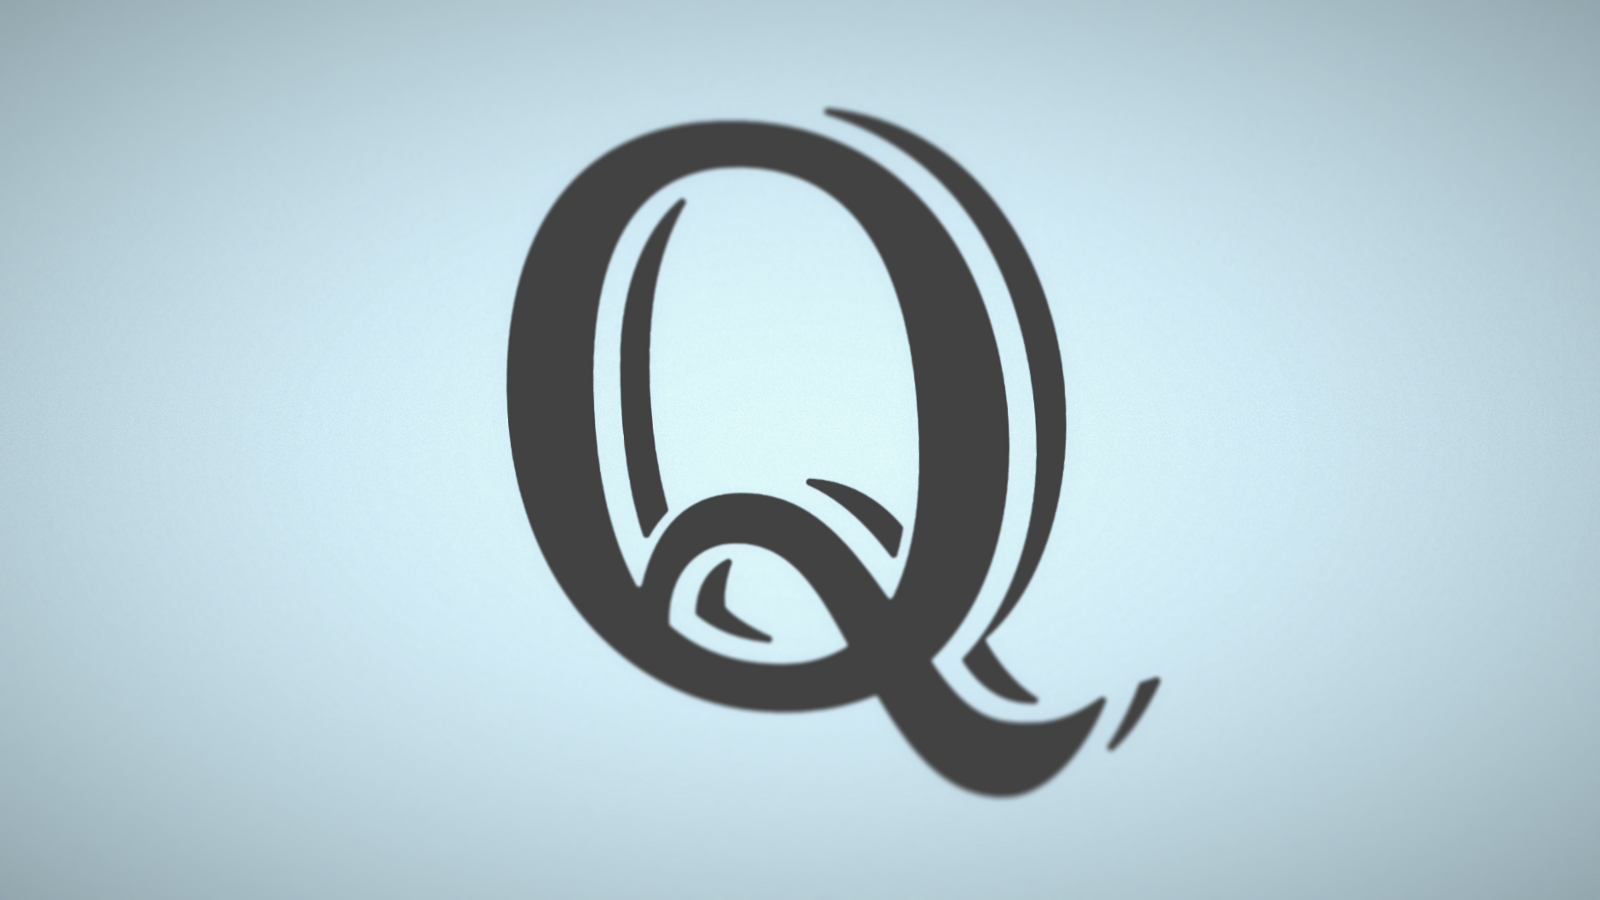 Lets build together nzzs storytelling toolbox q is now open source how is q different from other tools reheart Gallery